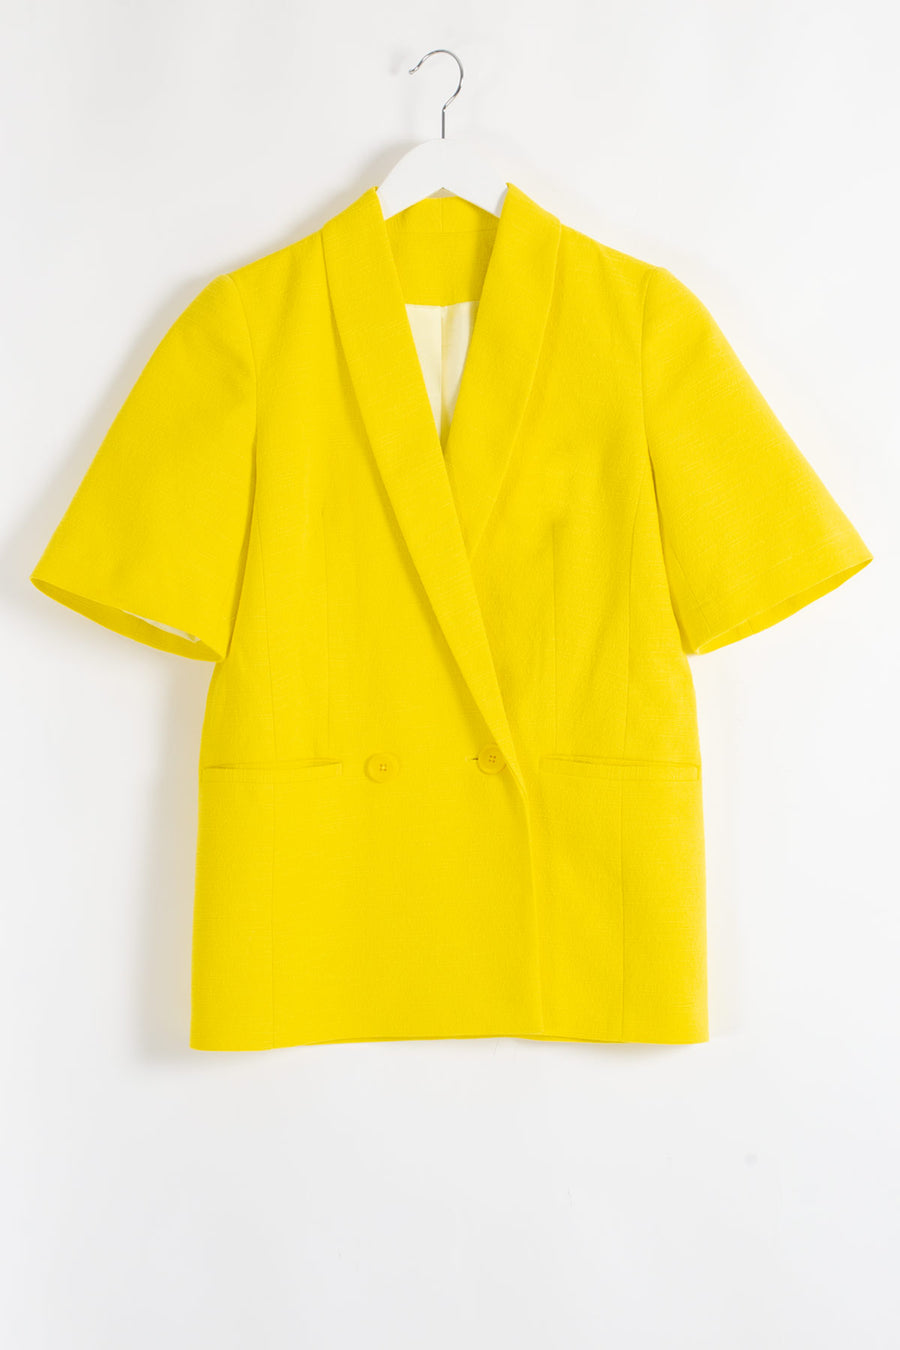 JULES Short Sleeved Jacket - Yellow